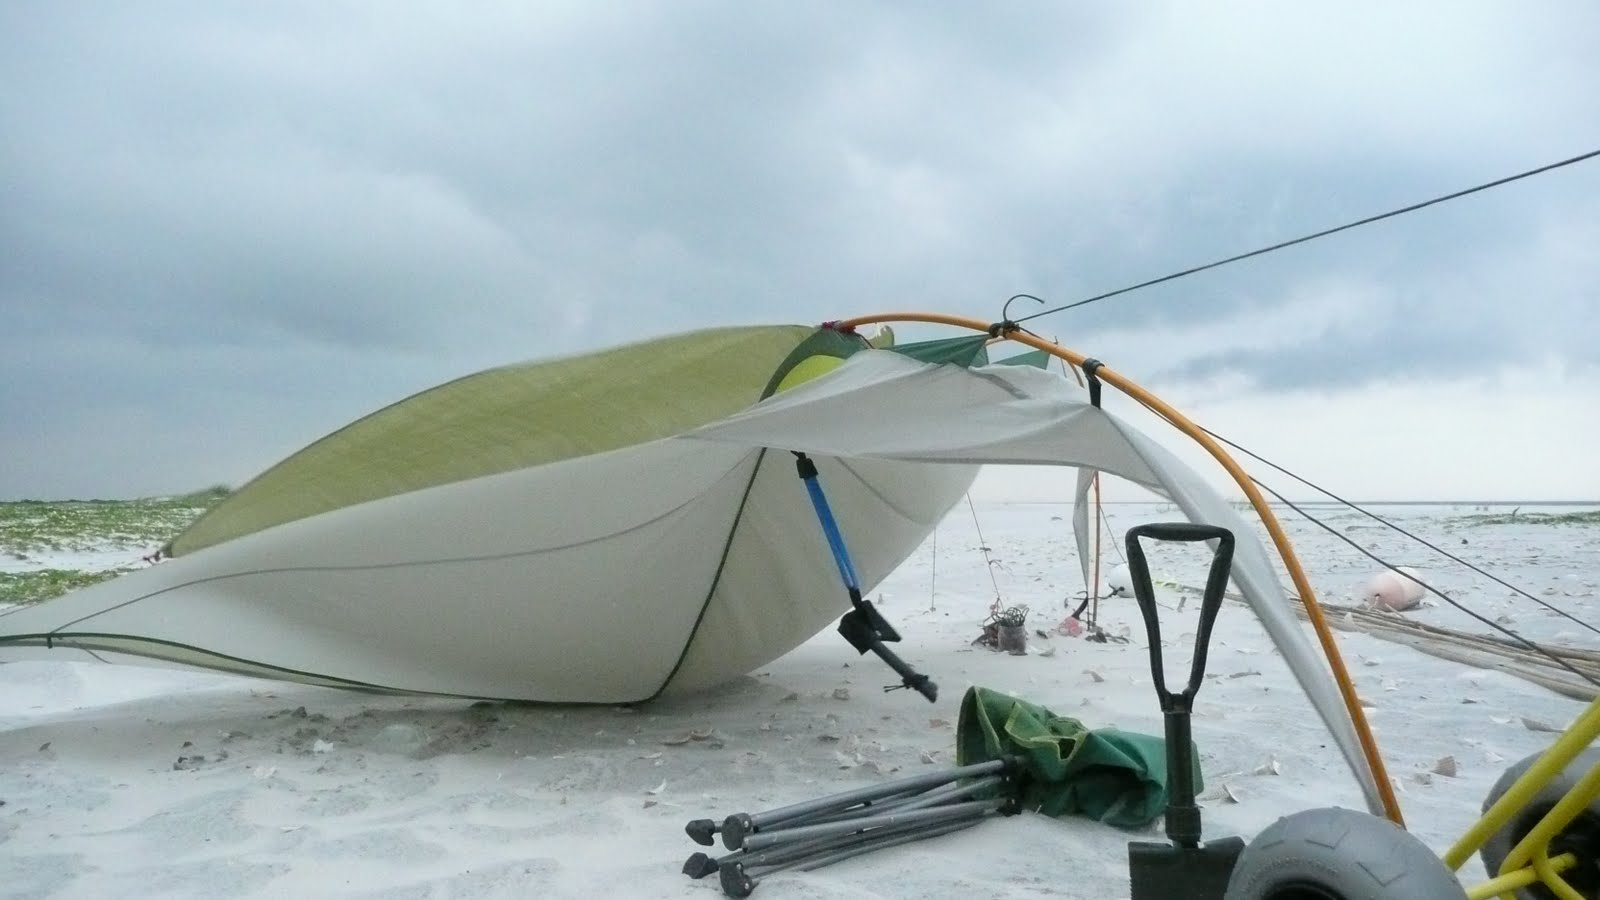 High winds just about wreck my shade structure. The wind is blowing stinging sand against my face and legs. The sky is getting darker clouds moving with ... & Horn Island Day Two | Robot on Holiday